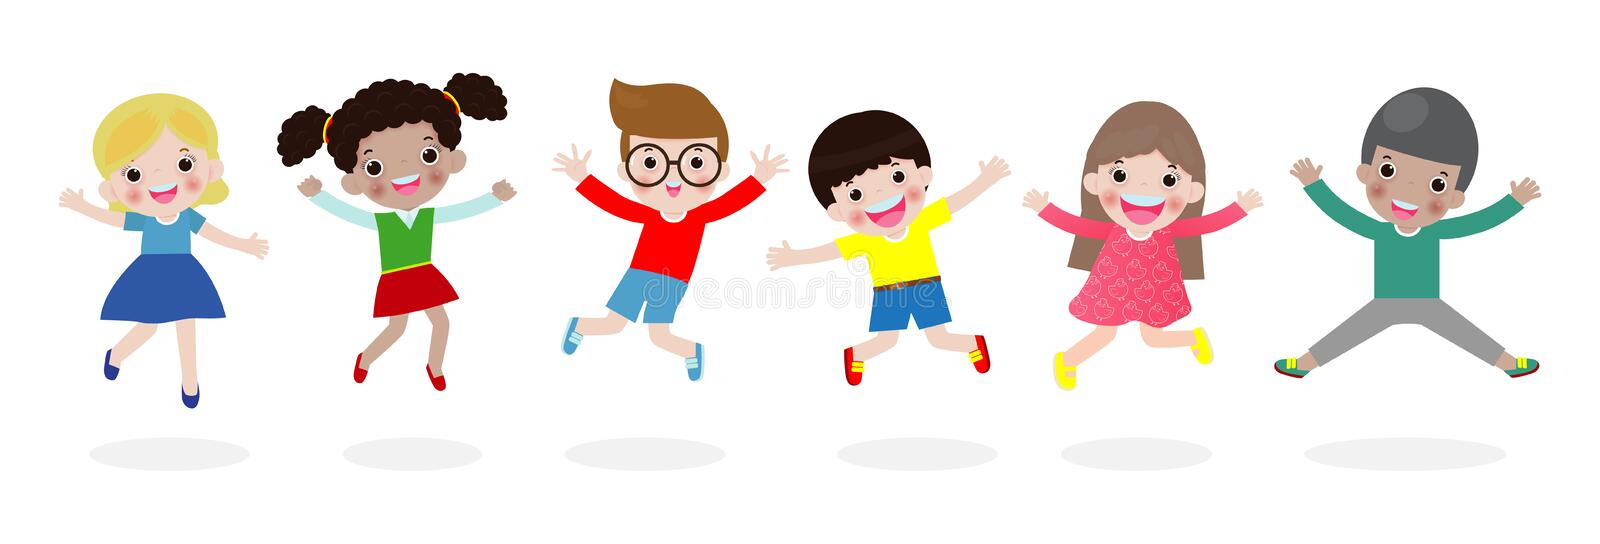 Kids jumping on the park, children jump with joy, happy cartoon child playing on the playground, isolated on white background Vect vector illustration